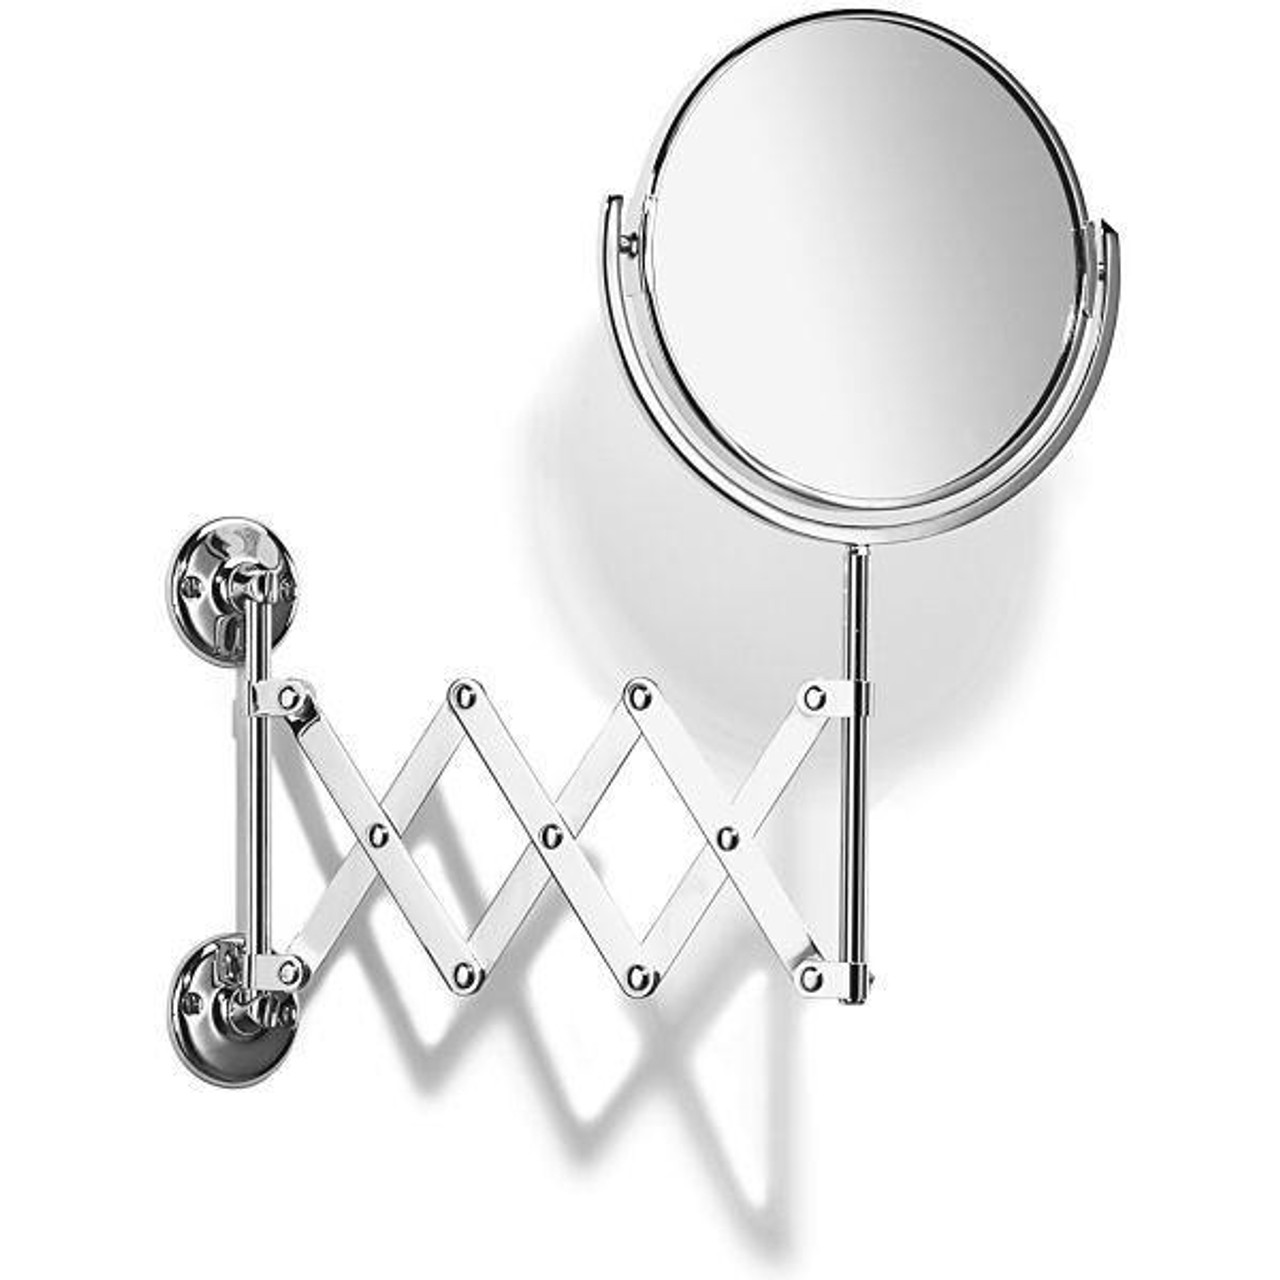 Chrome Plated Samuel Heath Curzon Extending Mirror Plain / Magnifying L110